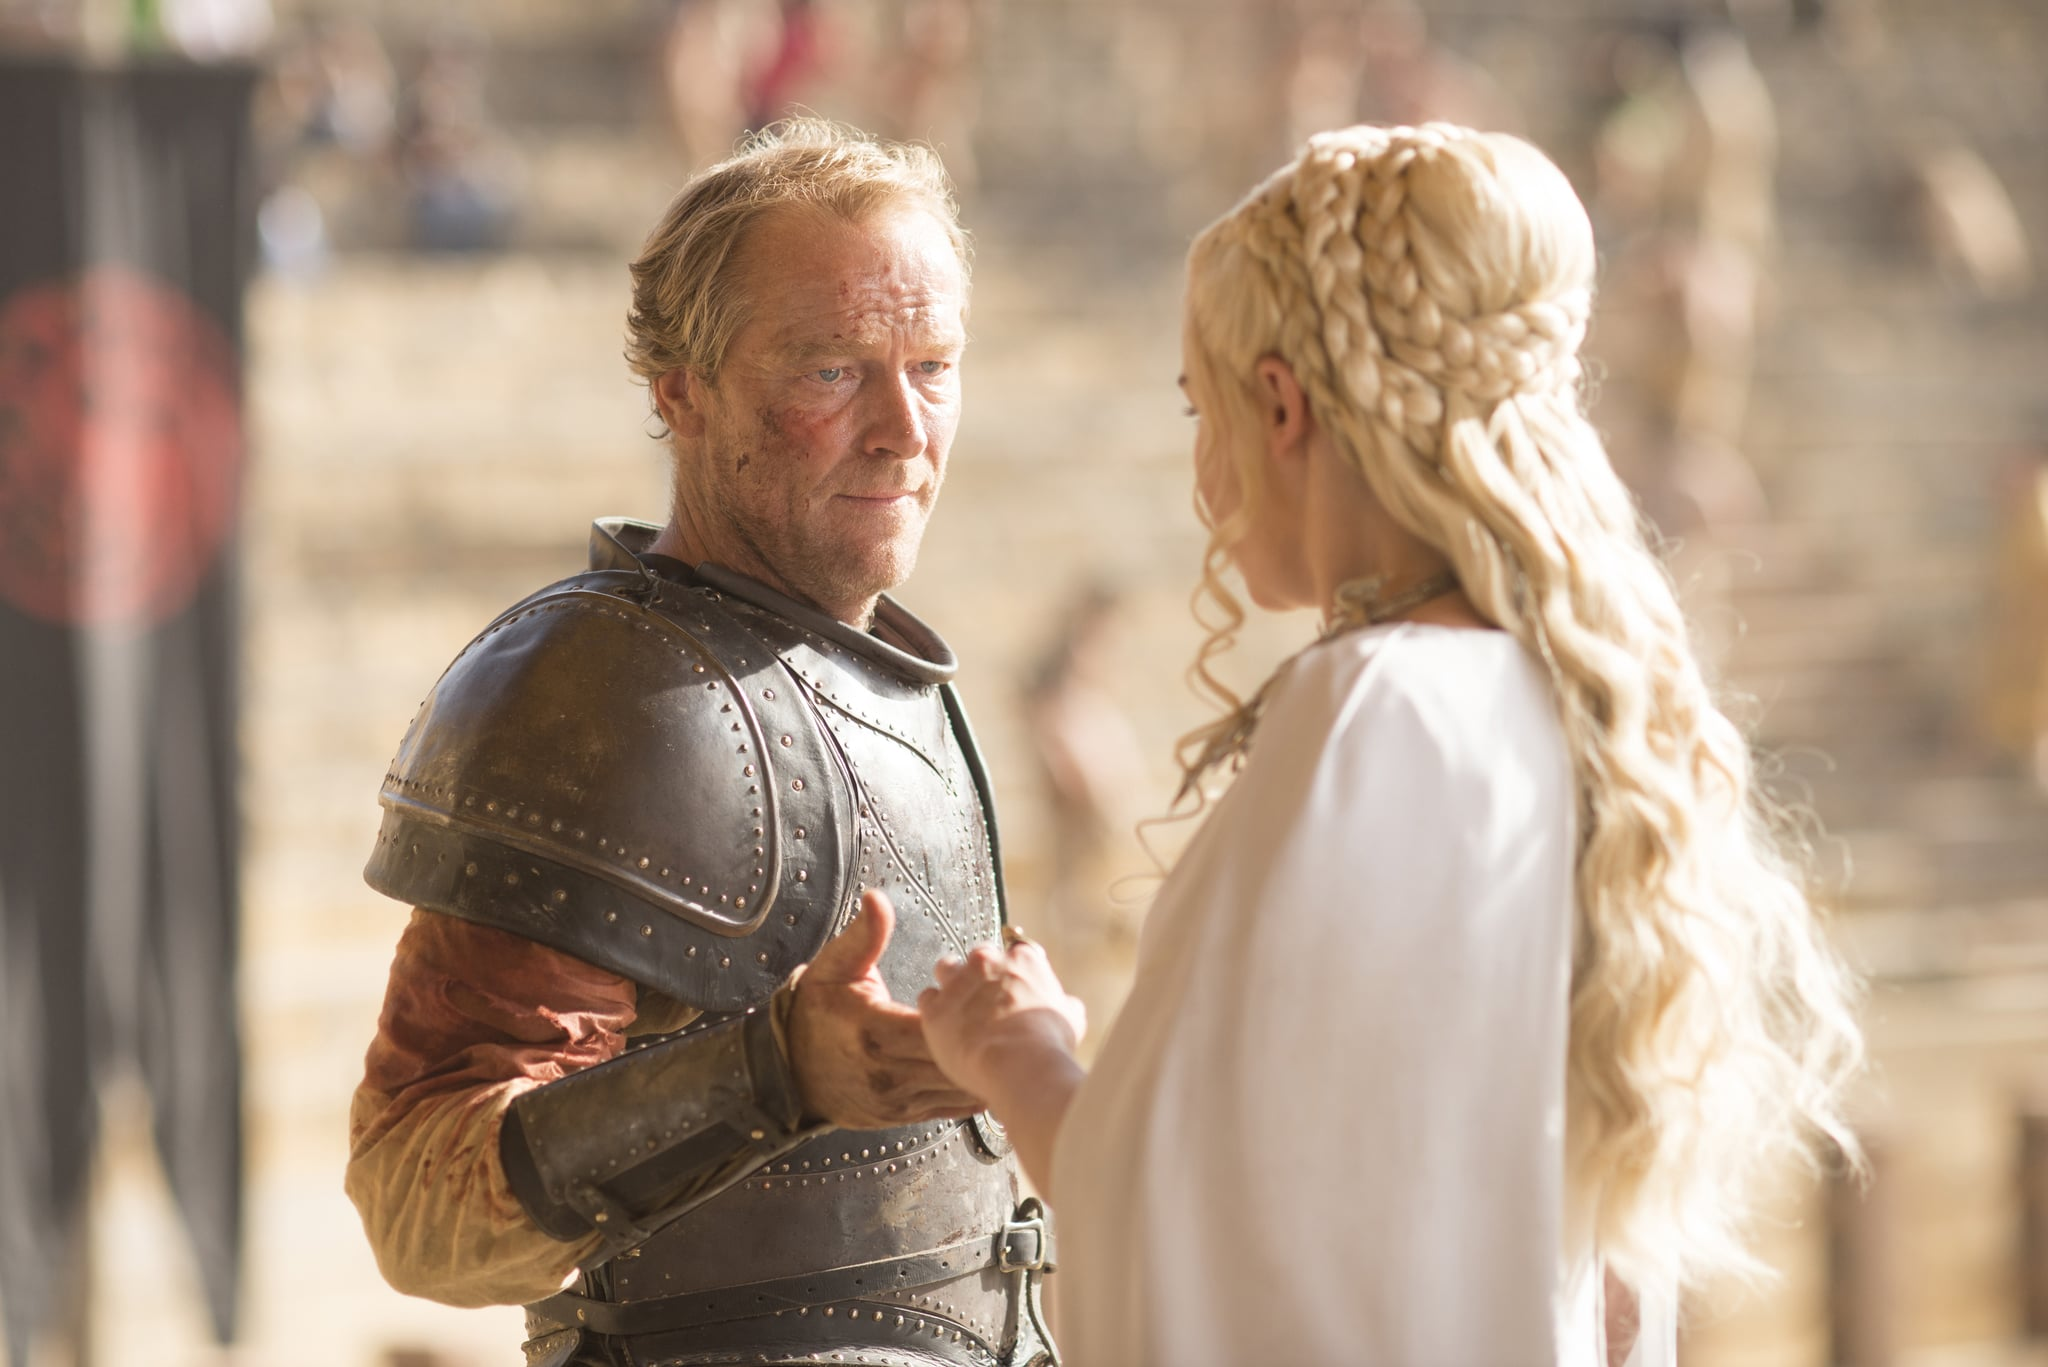 daenerys and jorah relationship goals